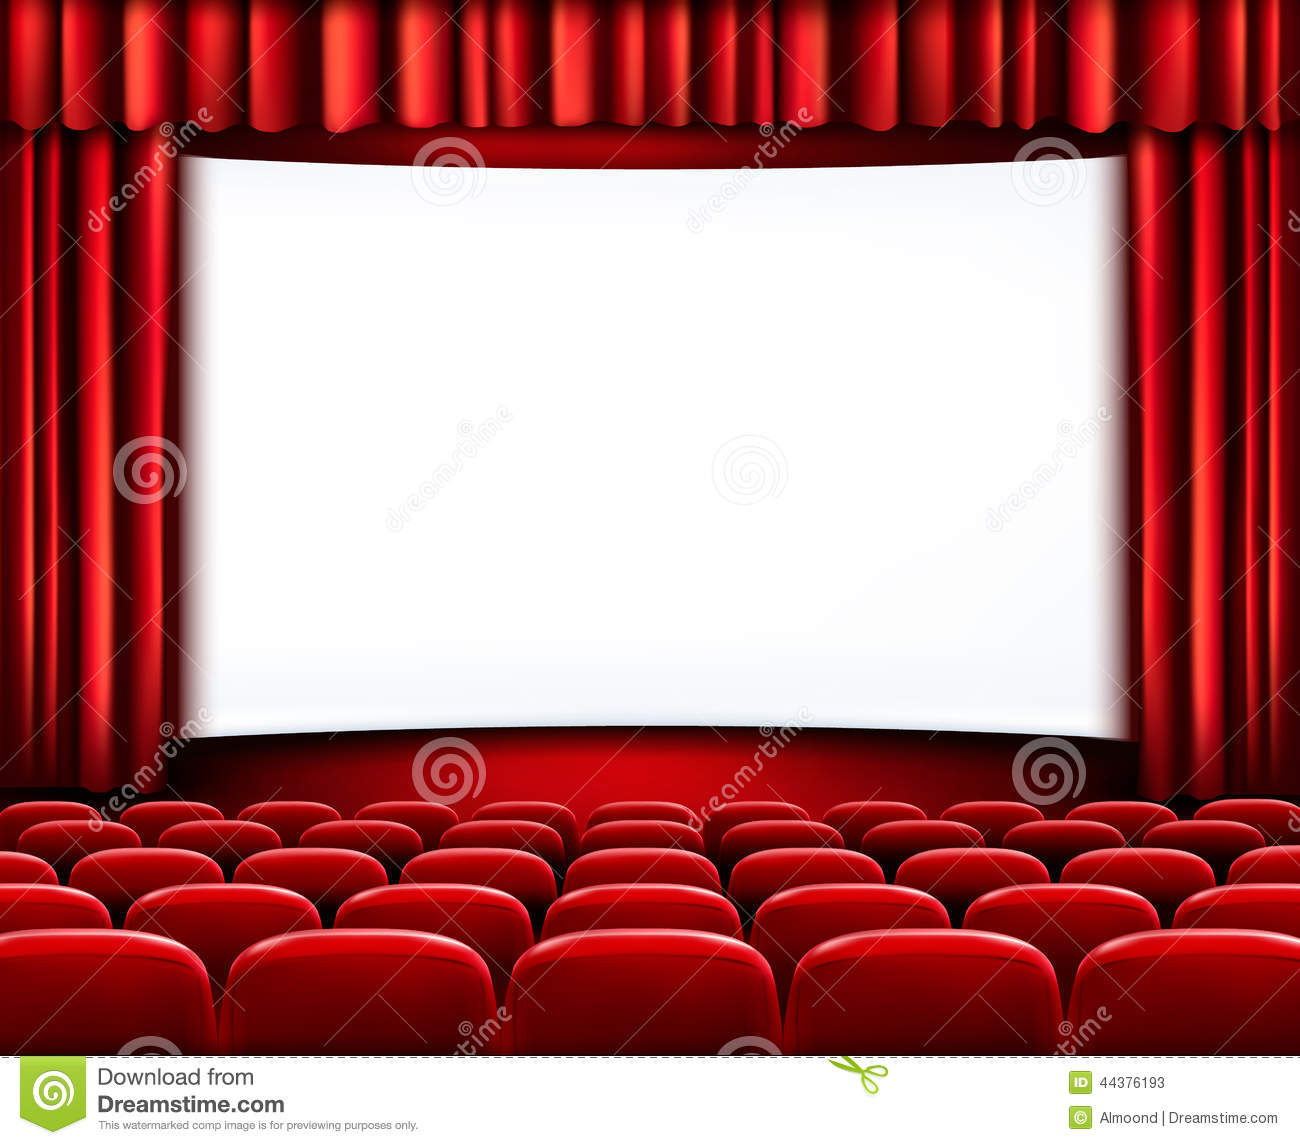 Rows Of Red Cinema Or Theater Seats Cartoon Vector Cartoondealer Com 44376193